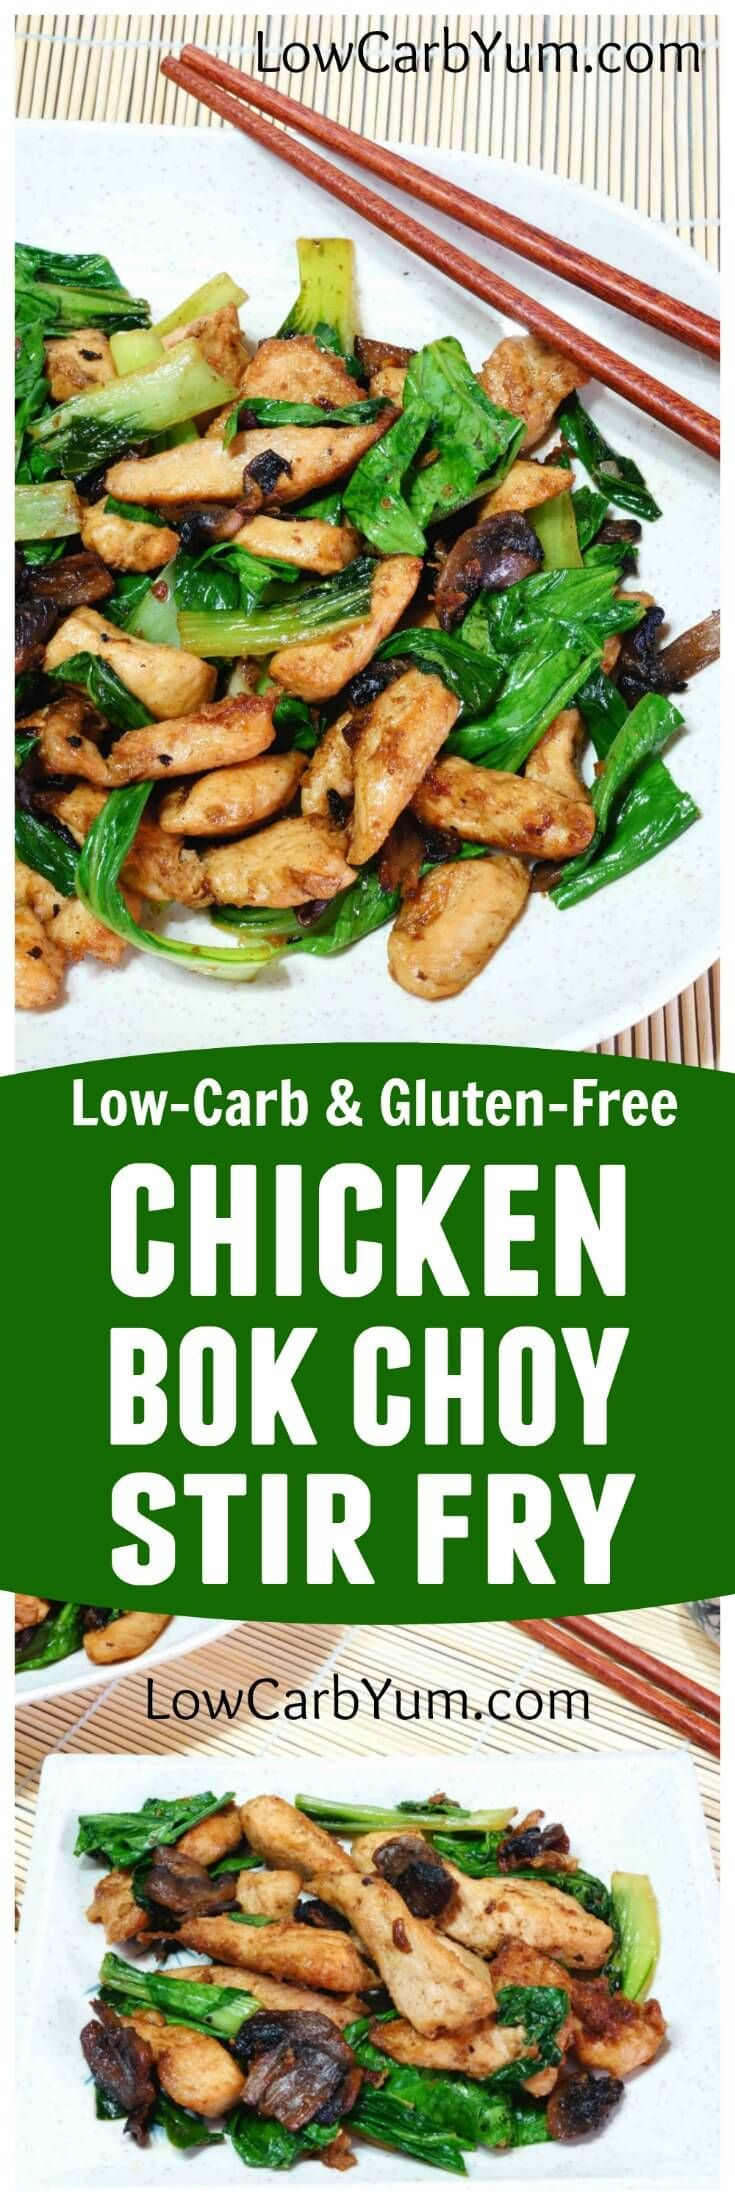 A delicious low carb and gluten free chicken bok choy stir fry recipe. The meat is dipped in egg yolks and coconut flour instead of the traditional corn starch mix. | LowCarbYum.com